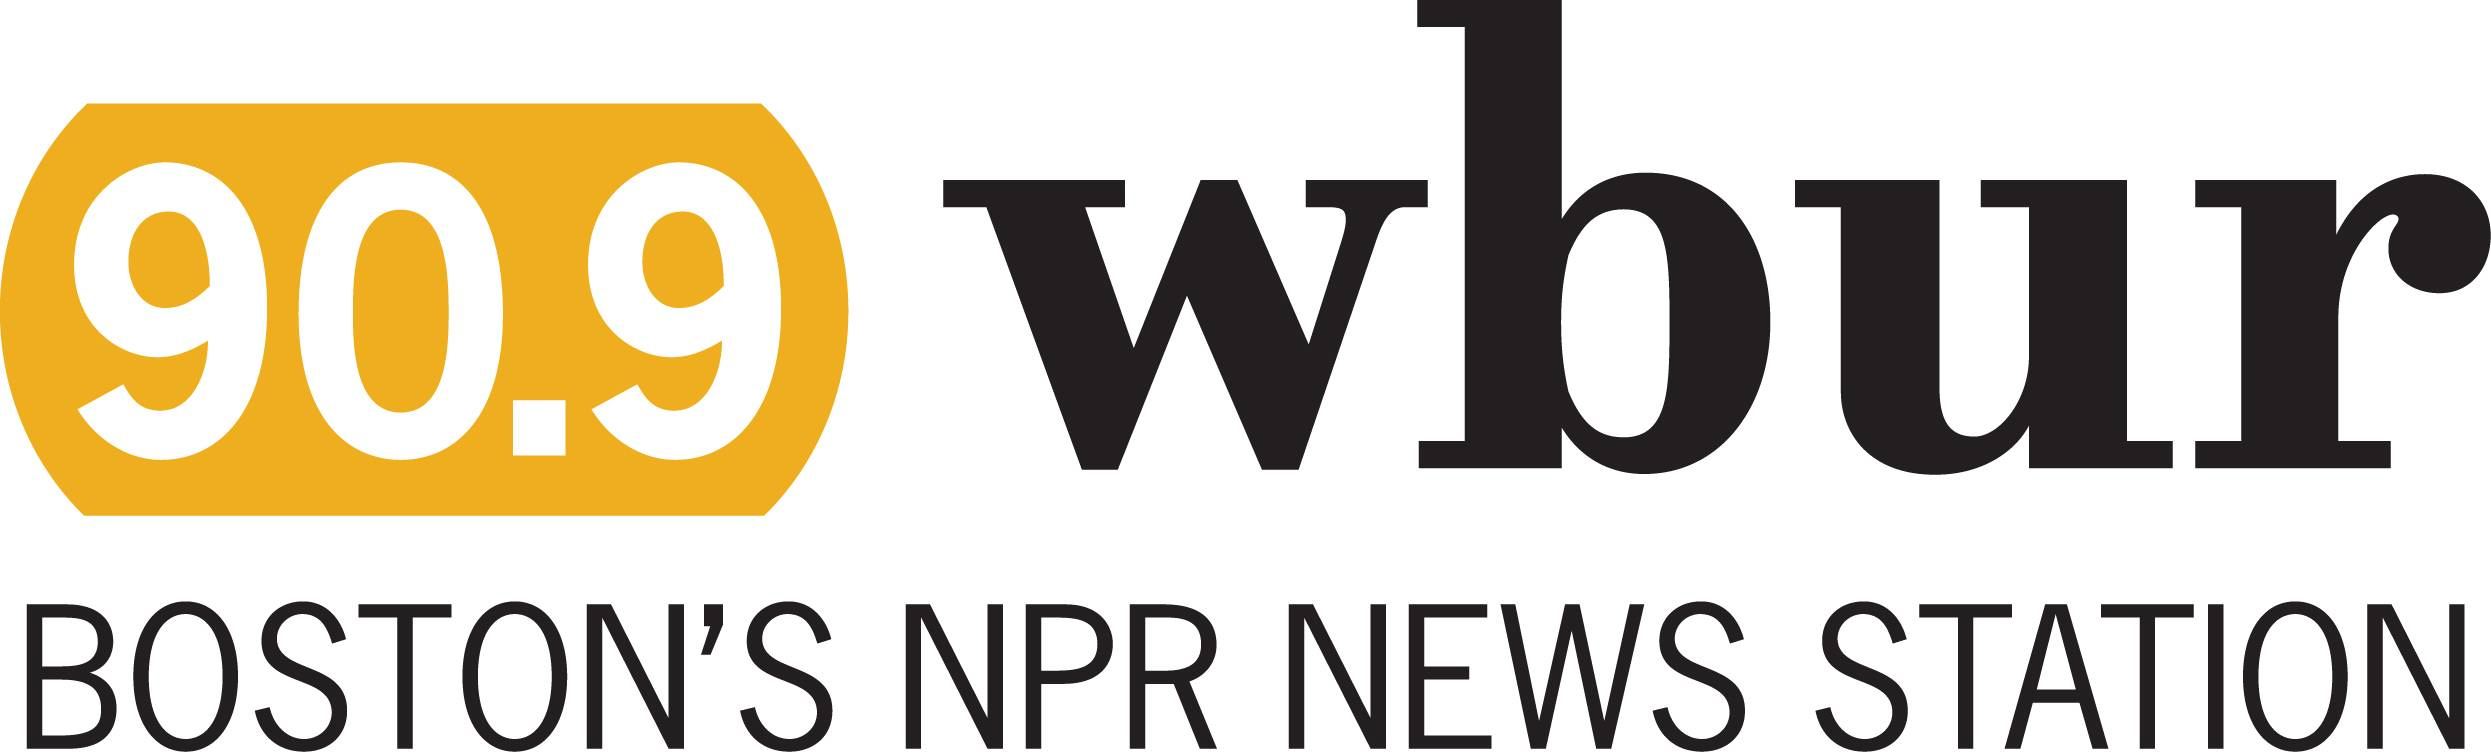 90.9 WBUR NPR News Station Boston